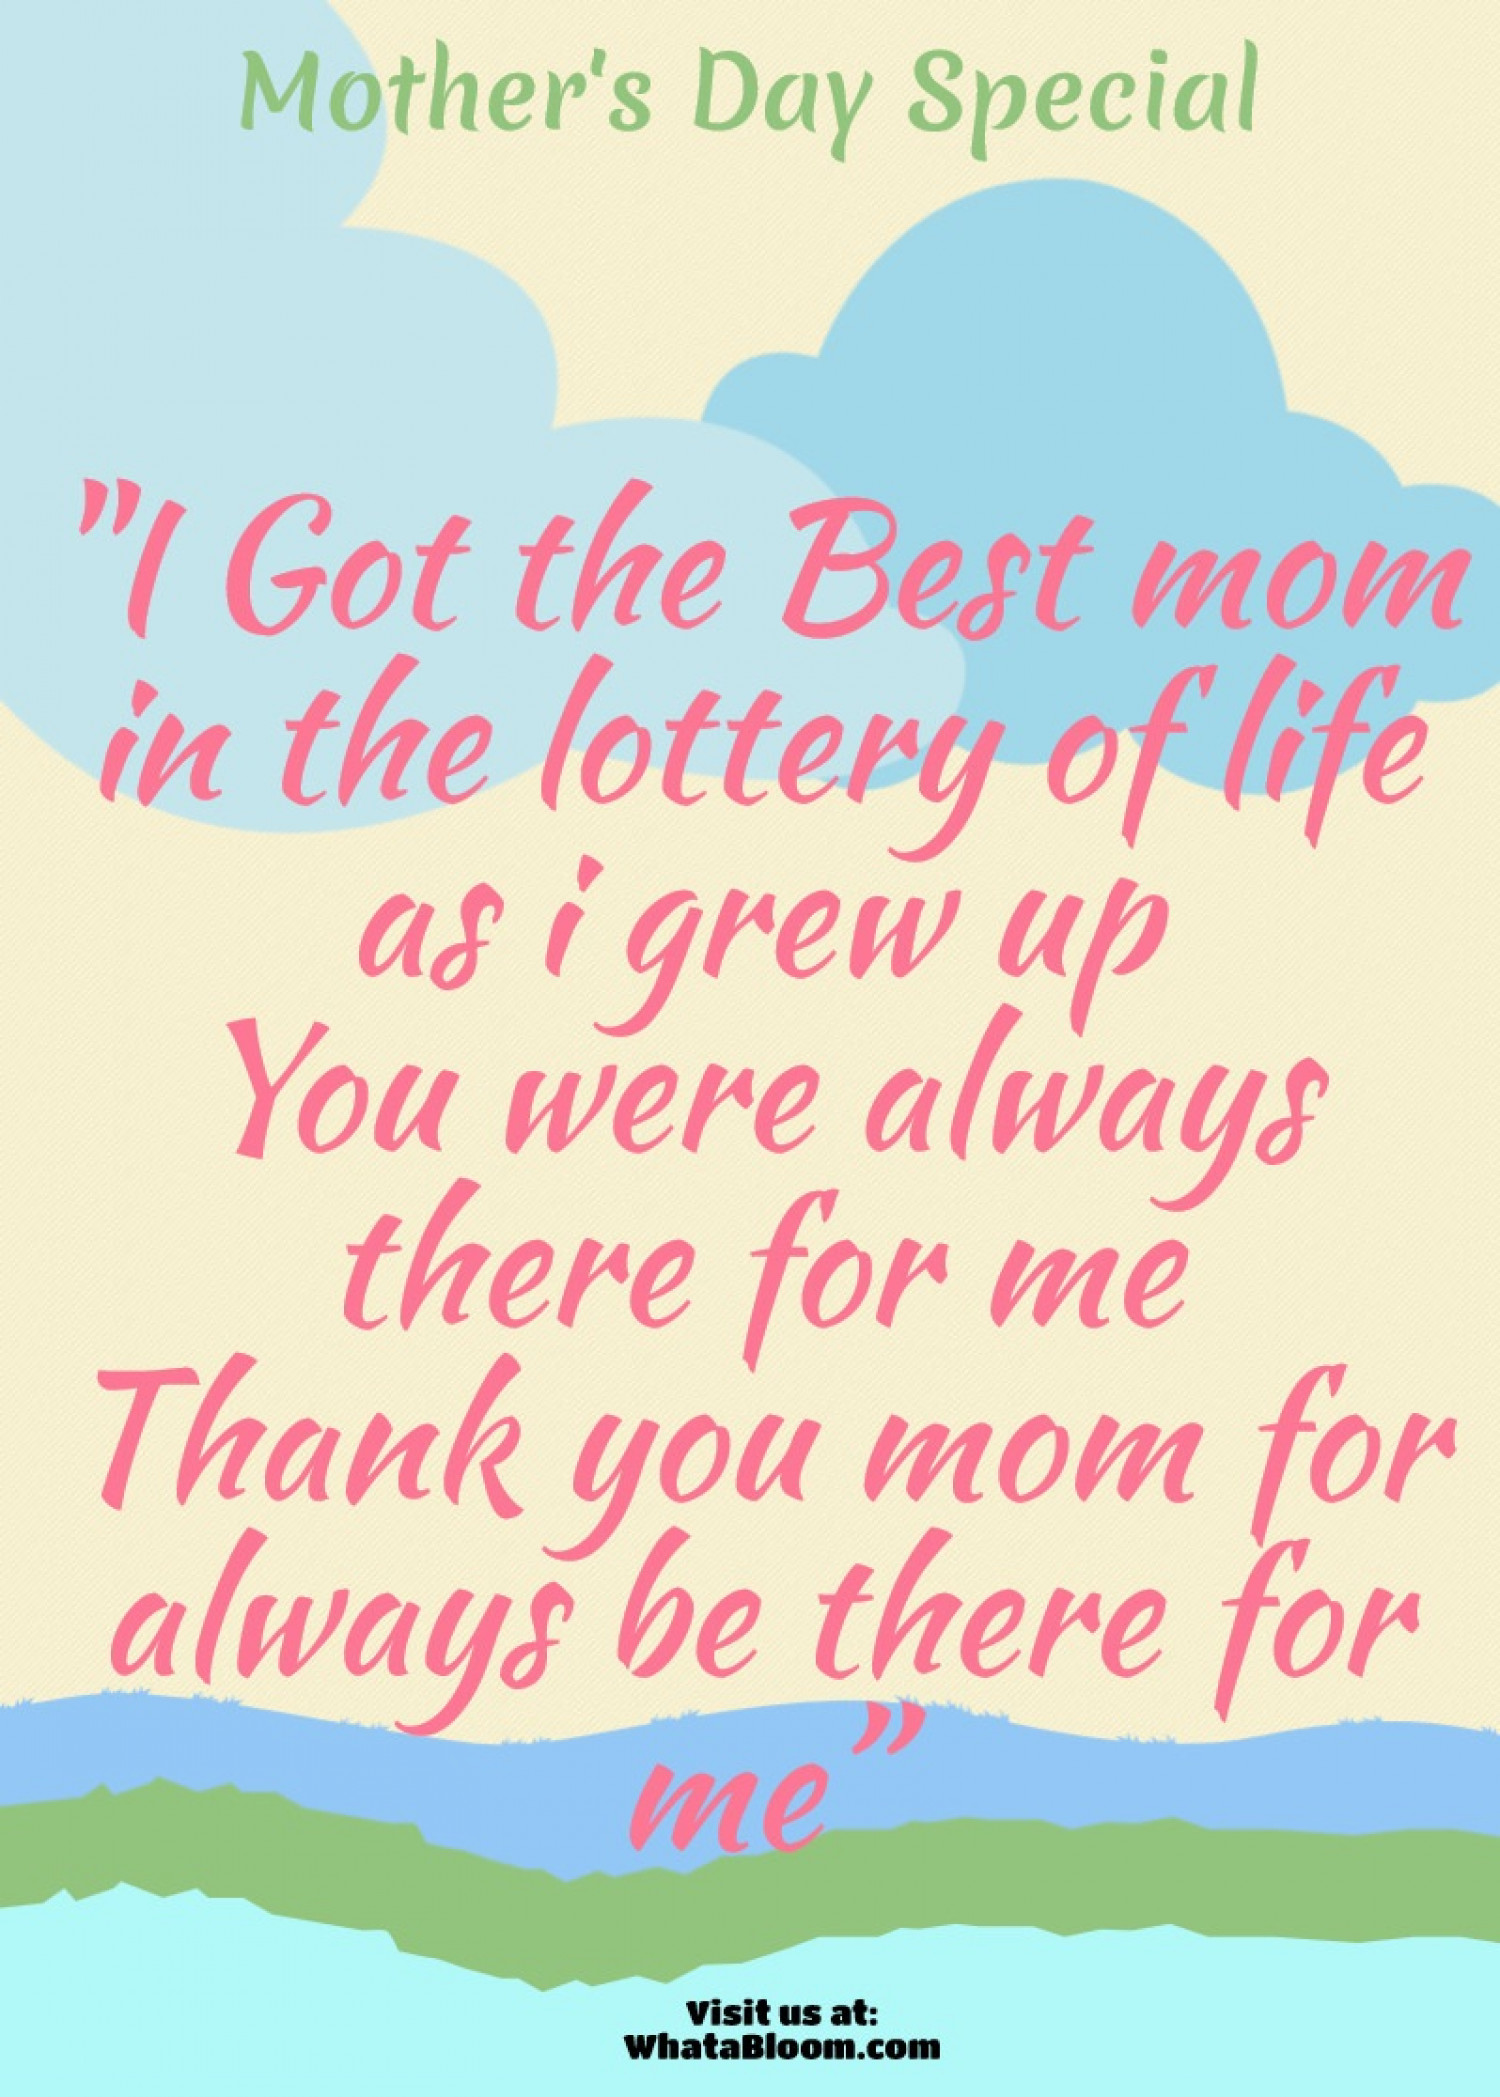 Best Mother's Day Quote | Visual.ly